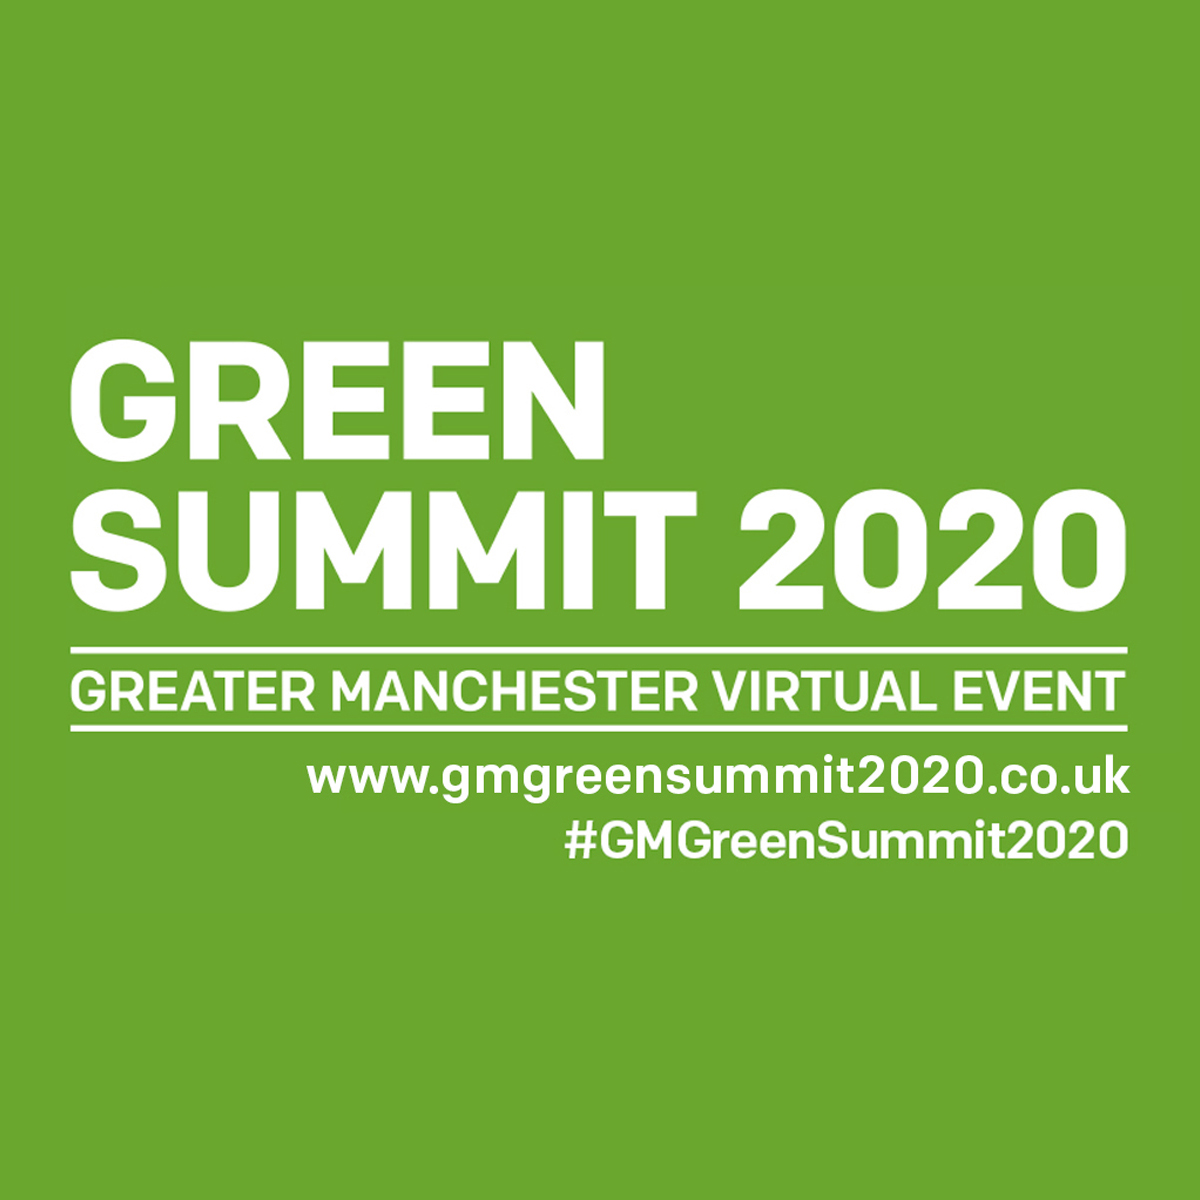 GreenSummit 2020 - Greater Manchester virtual event www.gmgreensummit2020.co.uk